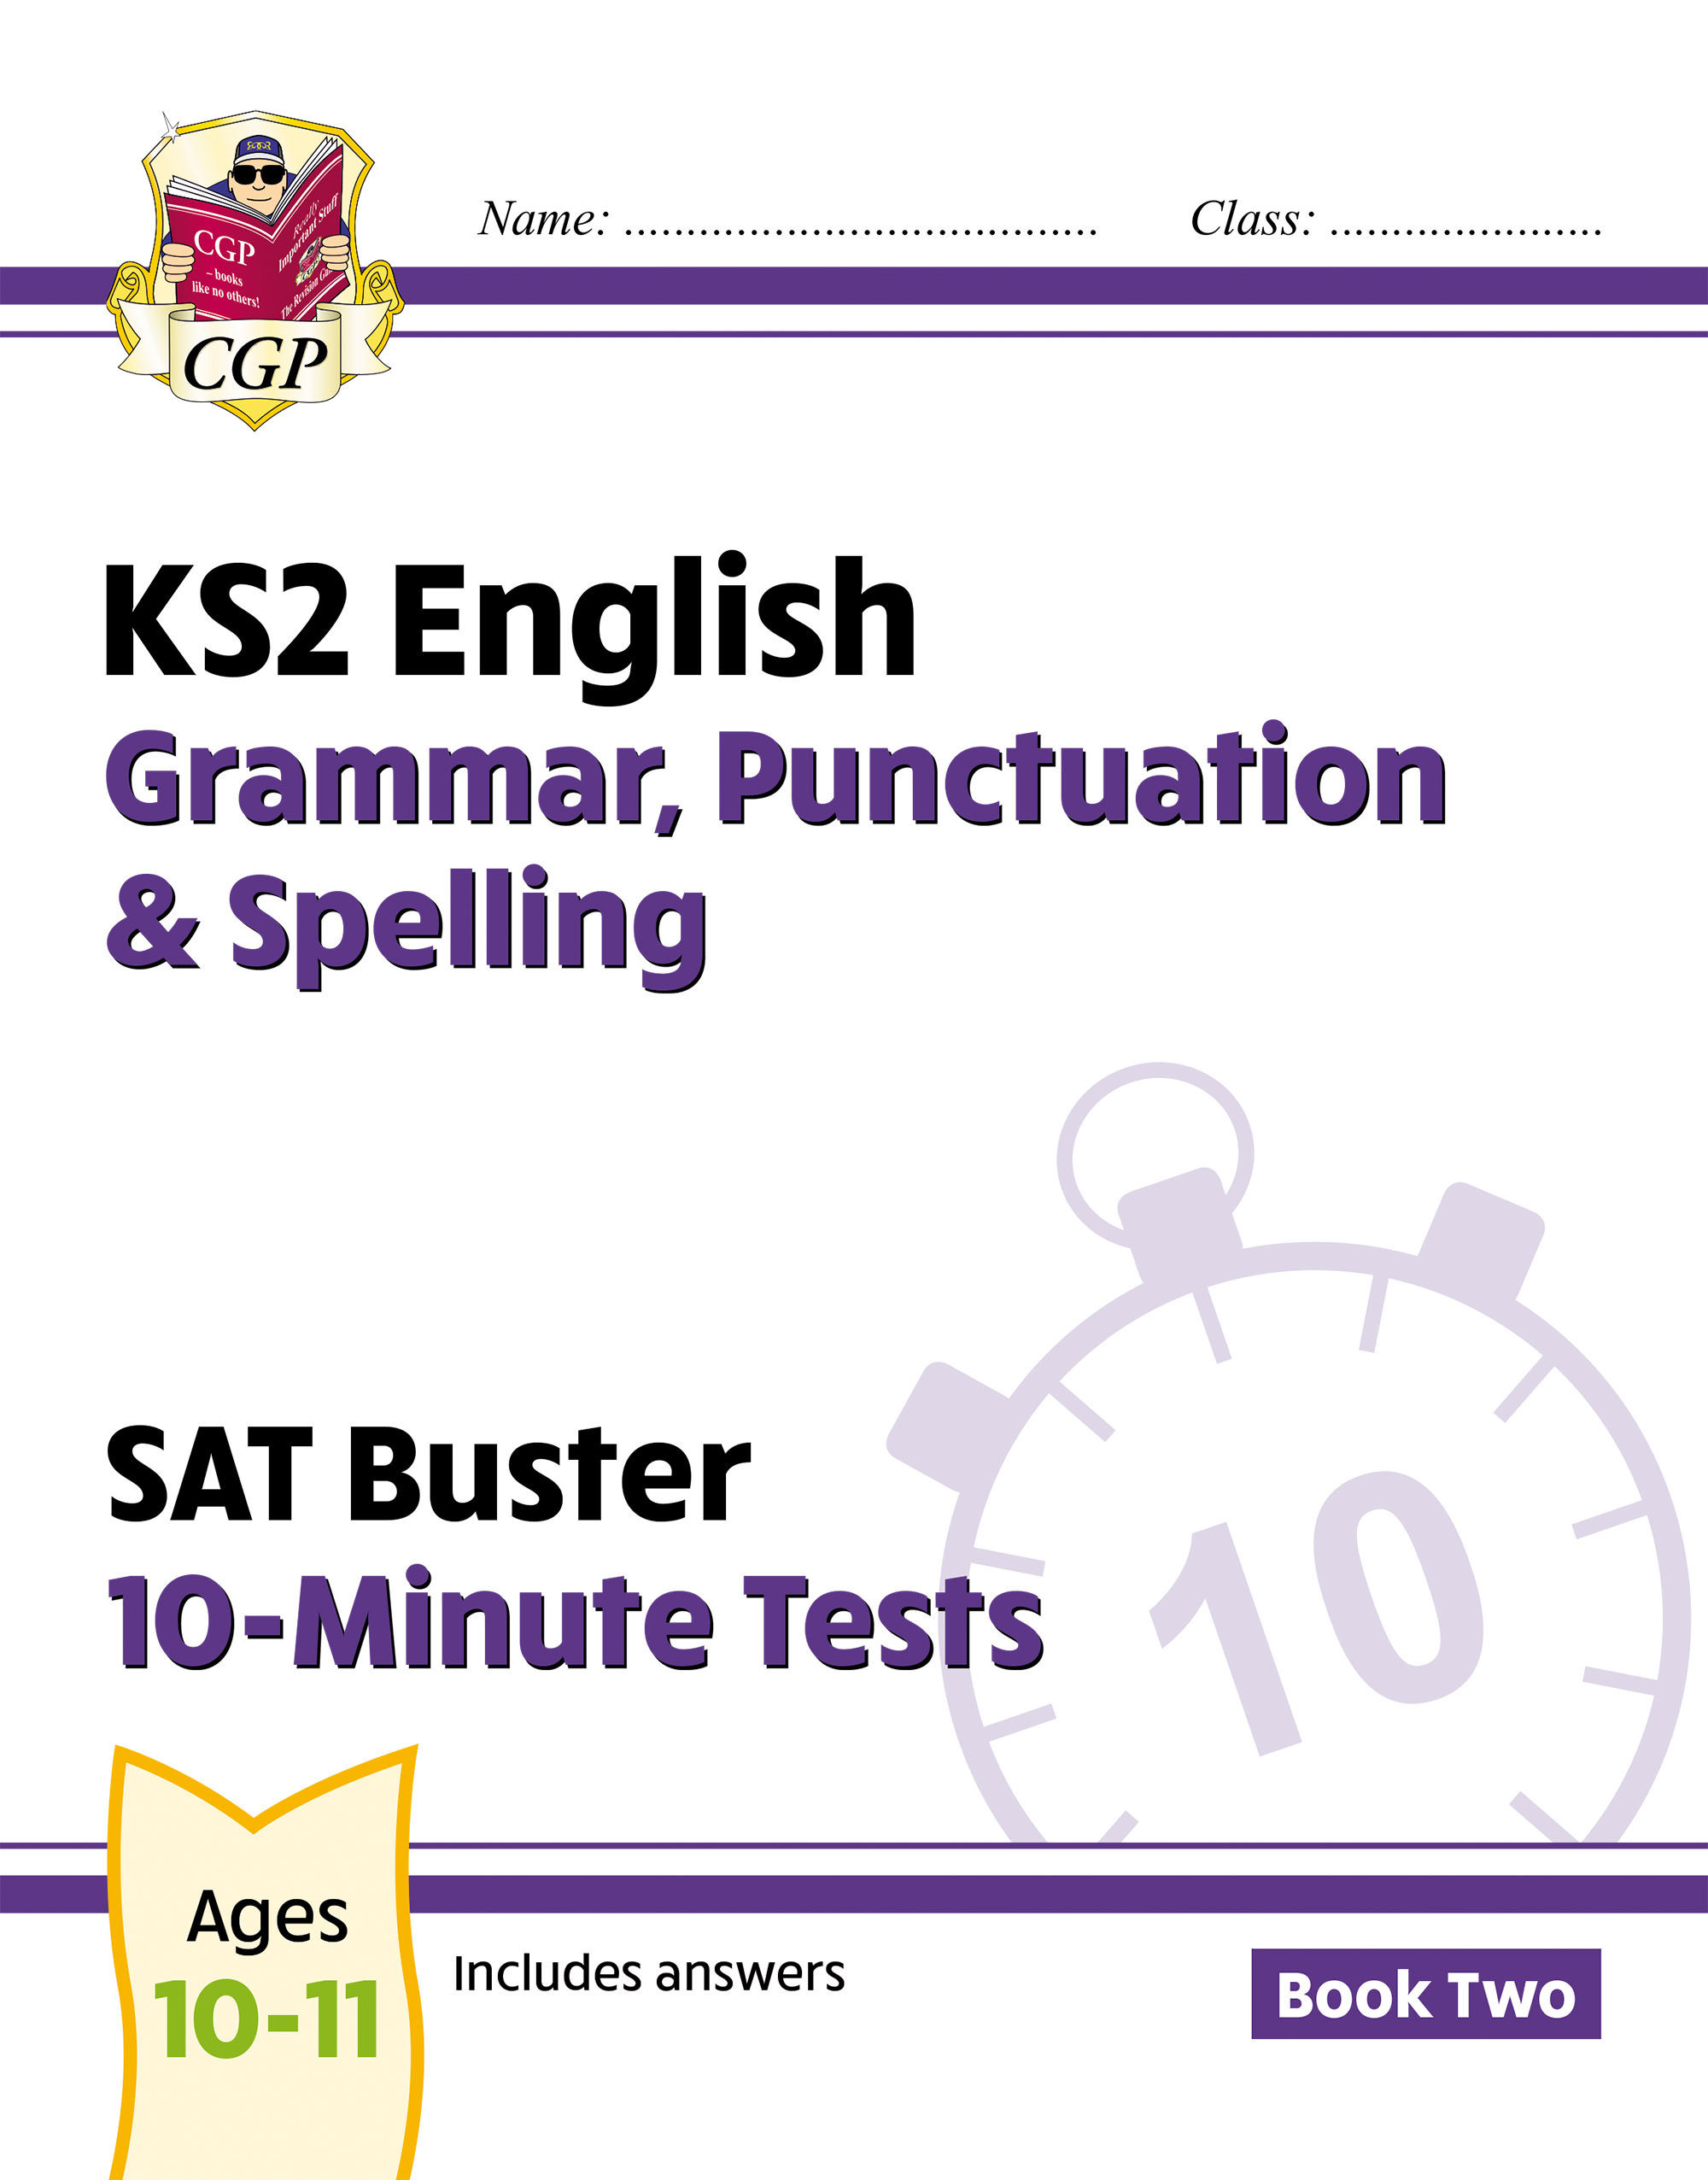 EXPG222DK - New KS2 English SAT Buster 10-Minute Tests: Grammar, Punctuation & Spelling - Book 2 (fo